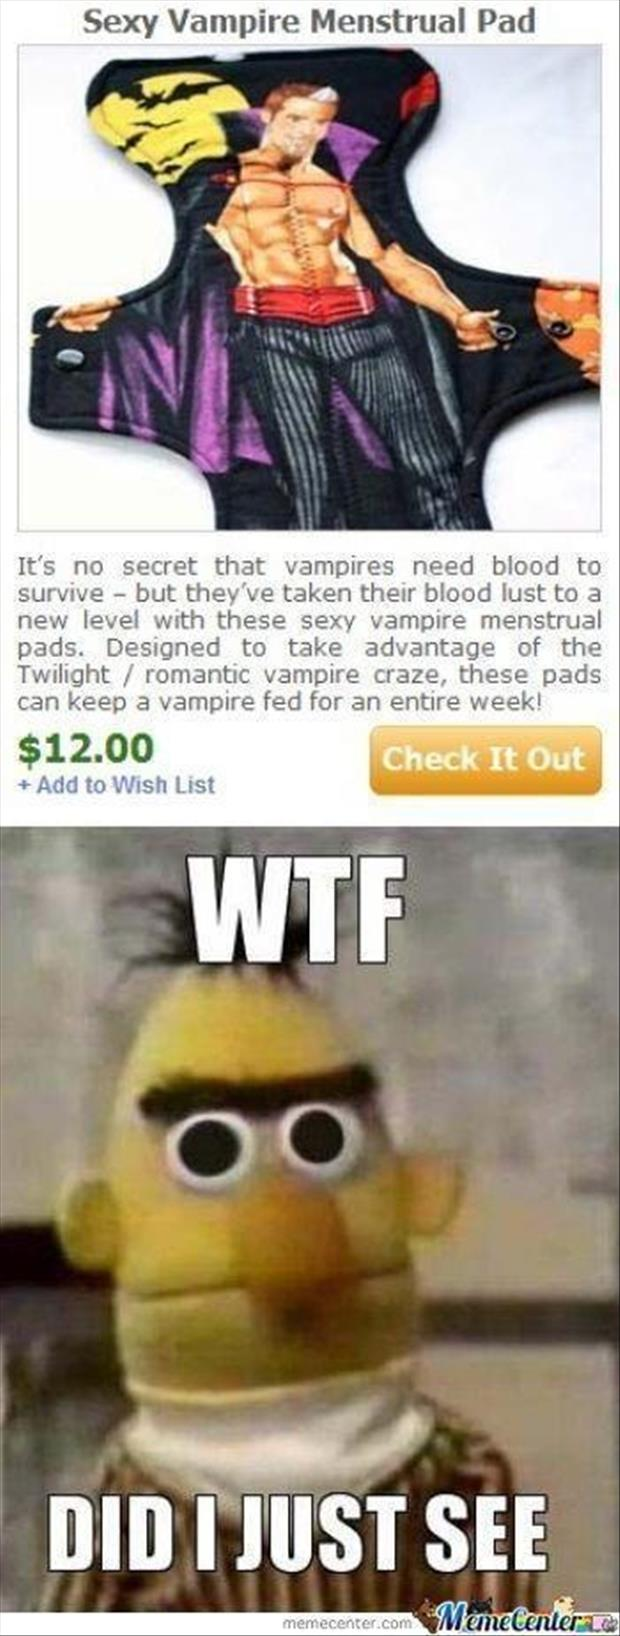 wtf did I just see vampire menstral pads